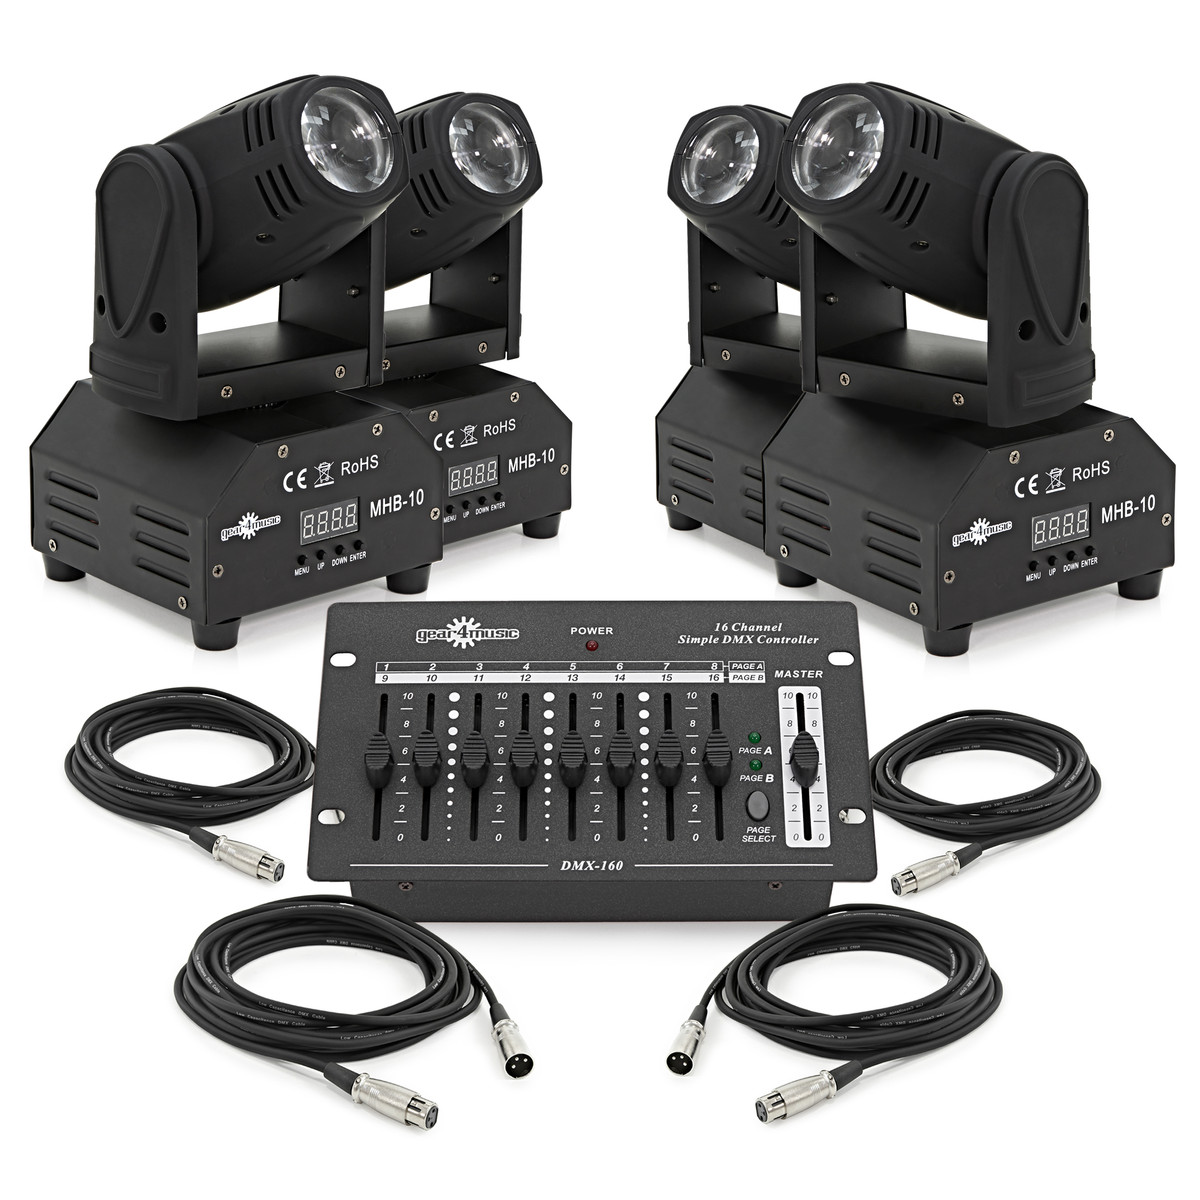 10w LED Beam Moving Head Quad Pack by Gear4music at Gear4music.com